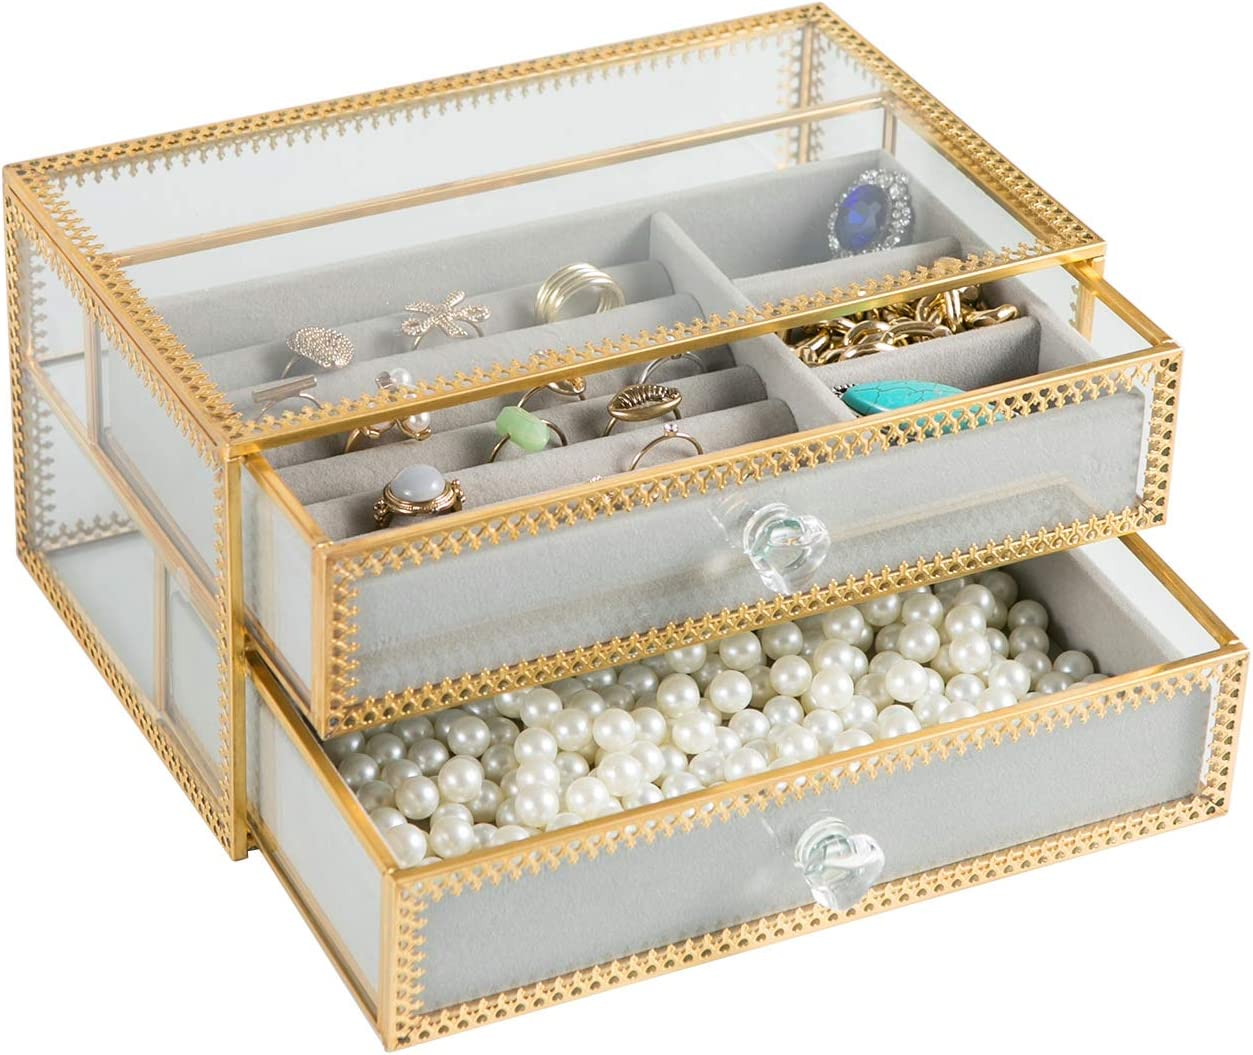 Vanity Vintage Dedication Clear Ranking TOP18 Glass Golden Jewelry Box 2 Drawers